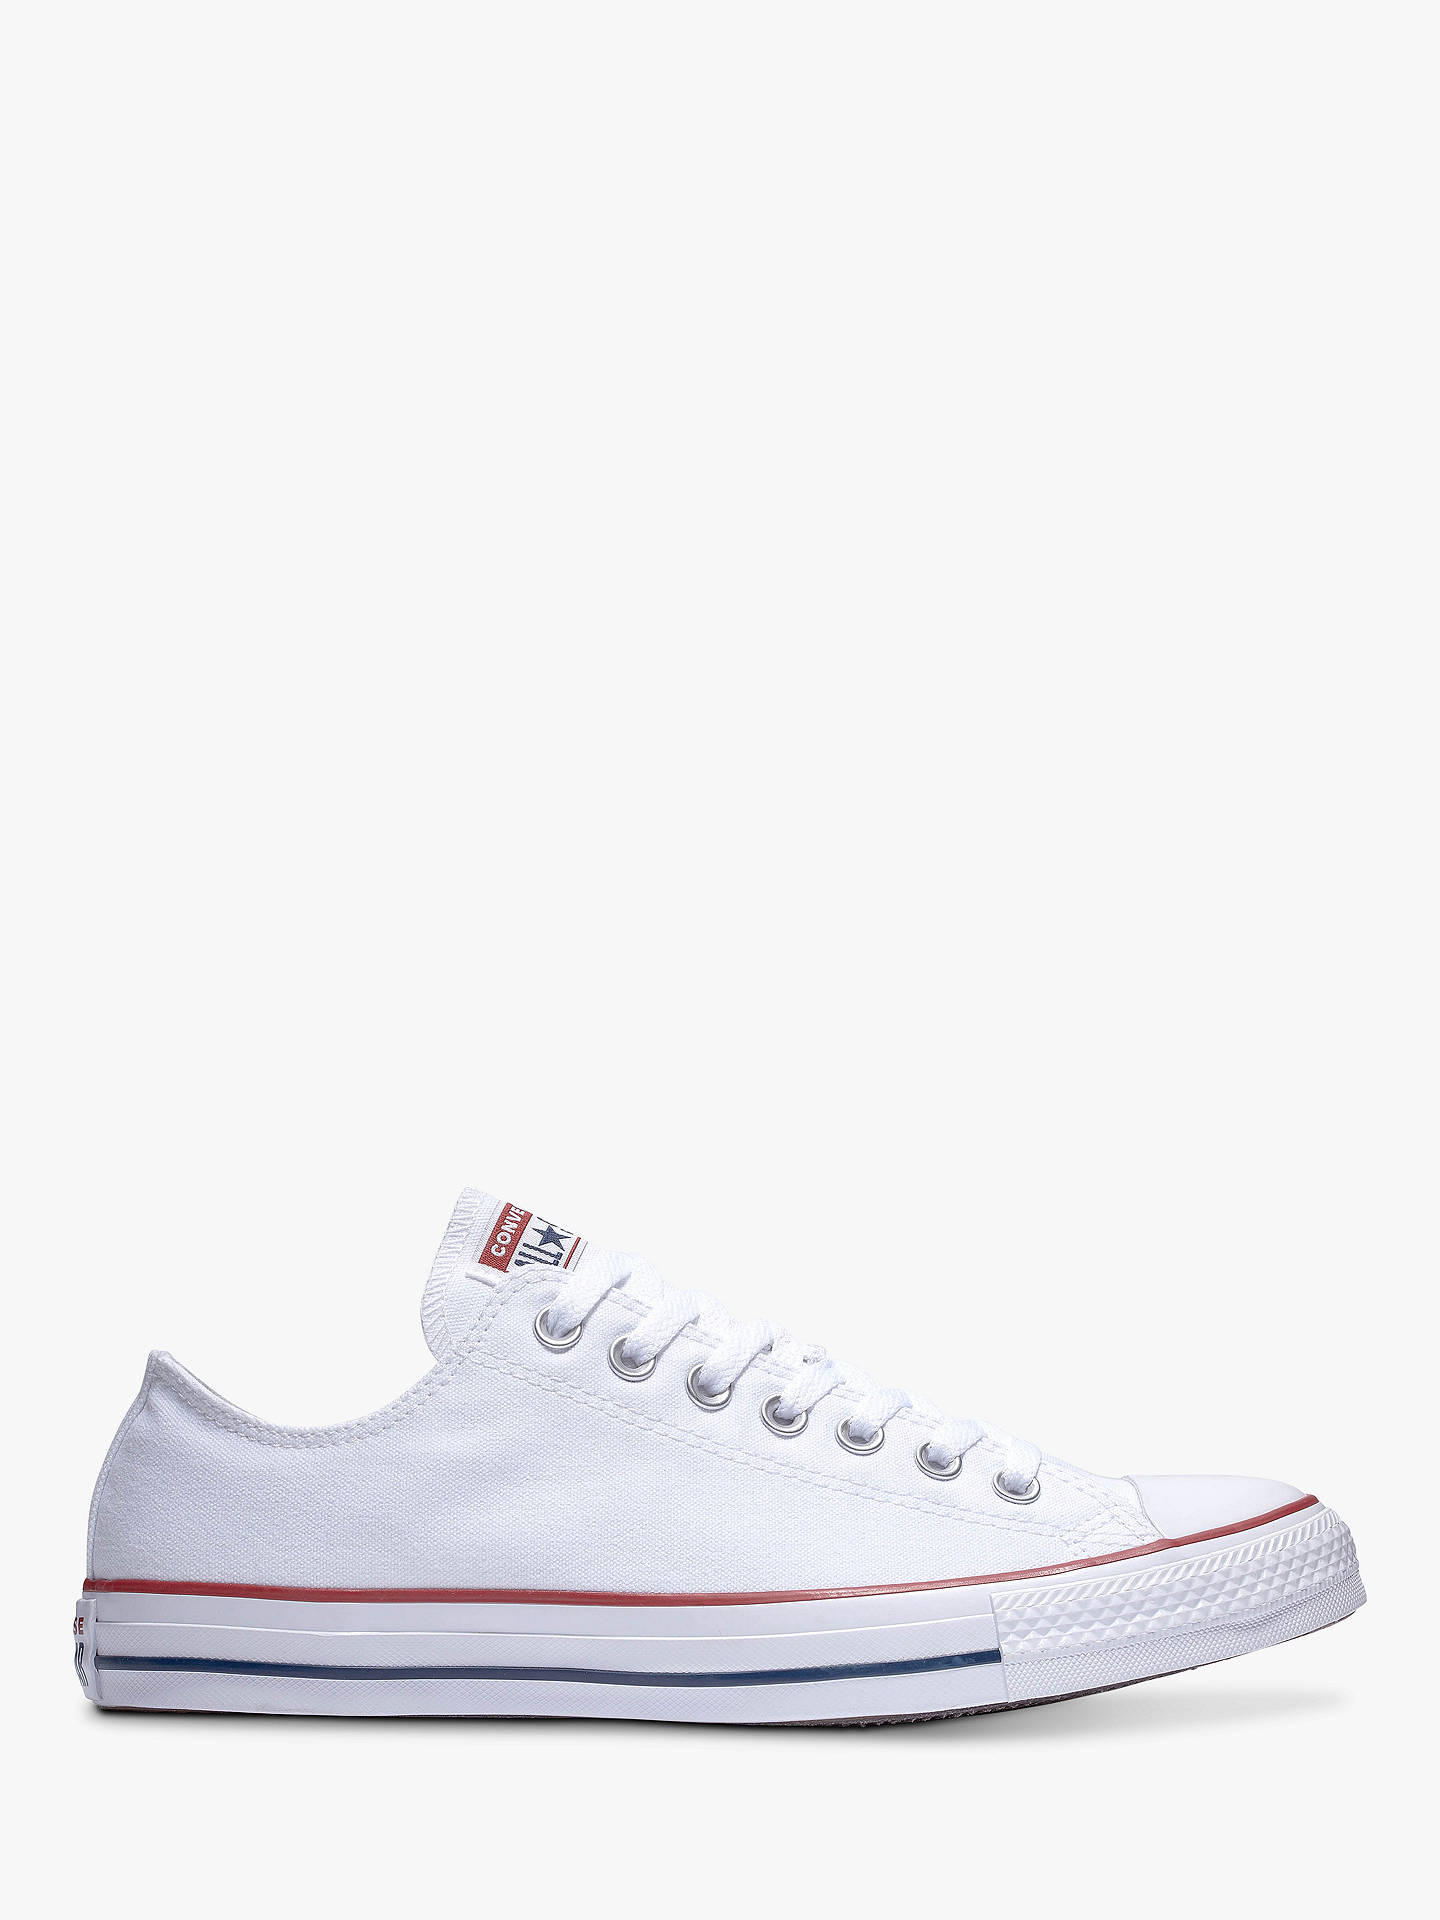 7362d28b55dd Converse Chuck Taylor All Star Canvas Ox Low-Top Trainers at John ...